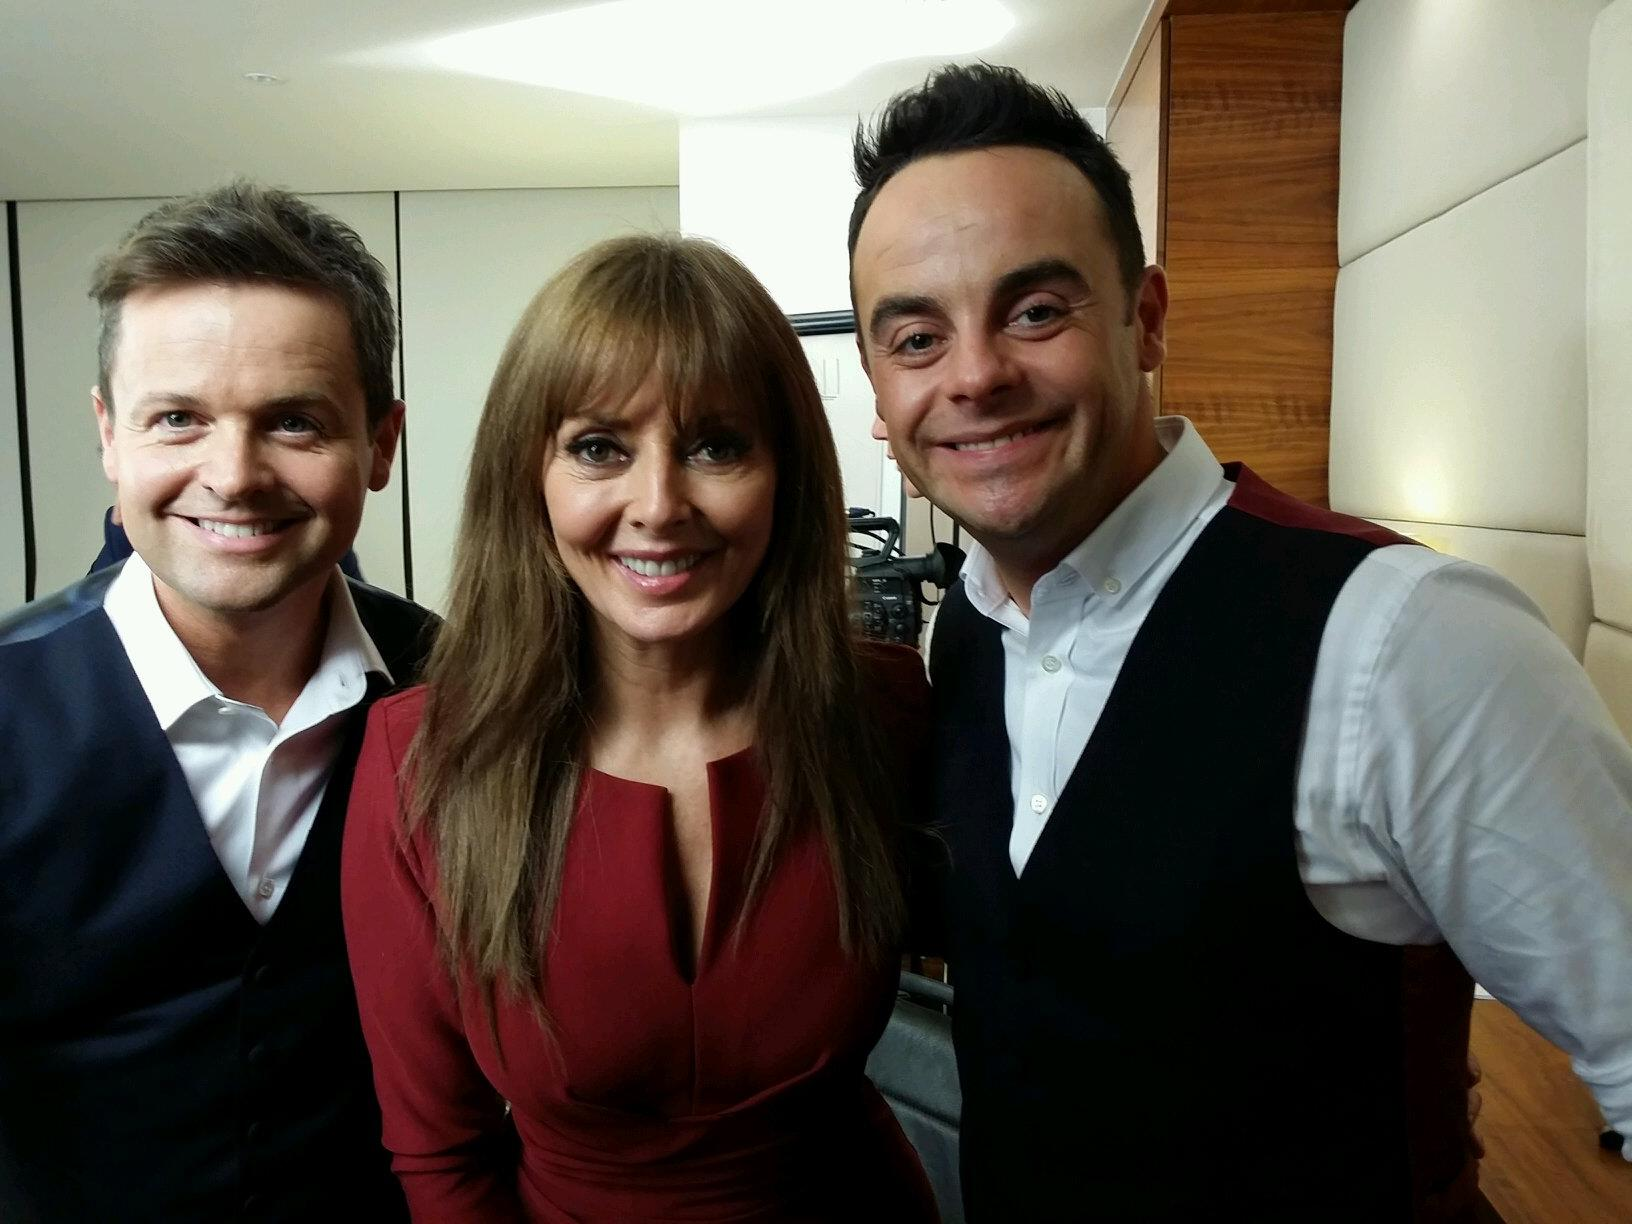 Have had a funny lunchtime with the boys xx watch Takeaway on Saturday night xx http://t.co/ReS8uP0CwE